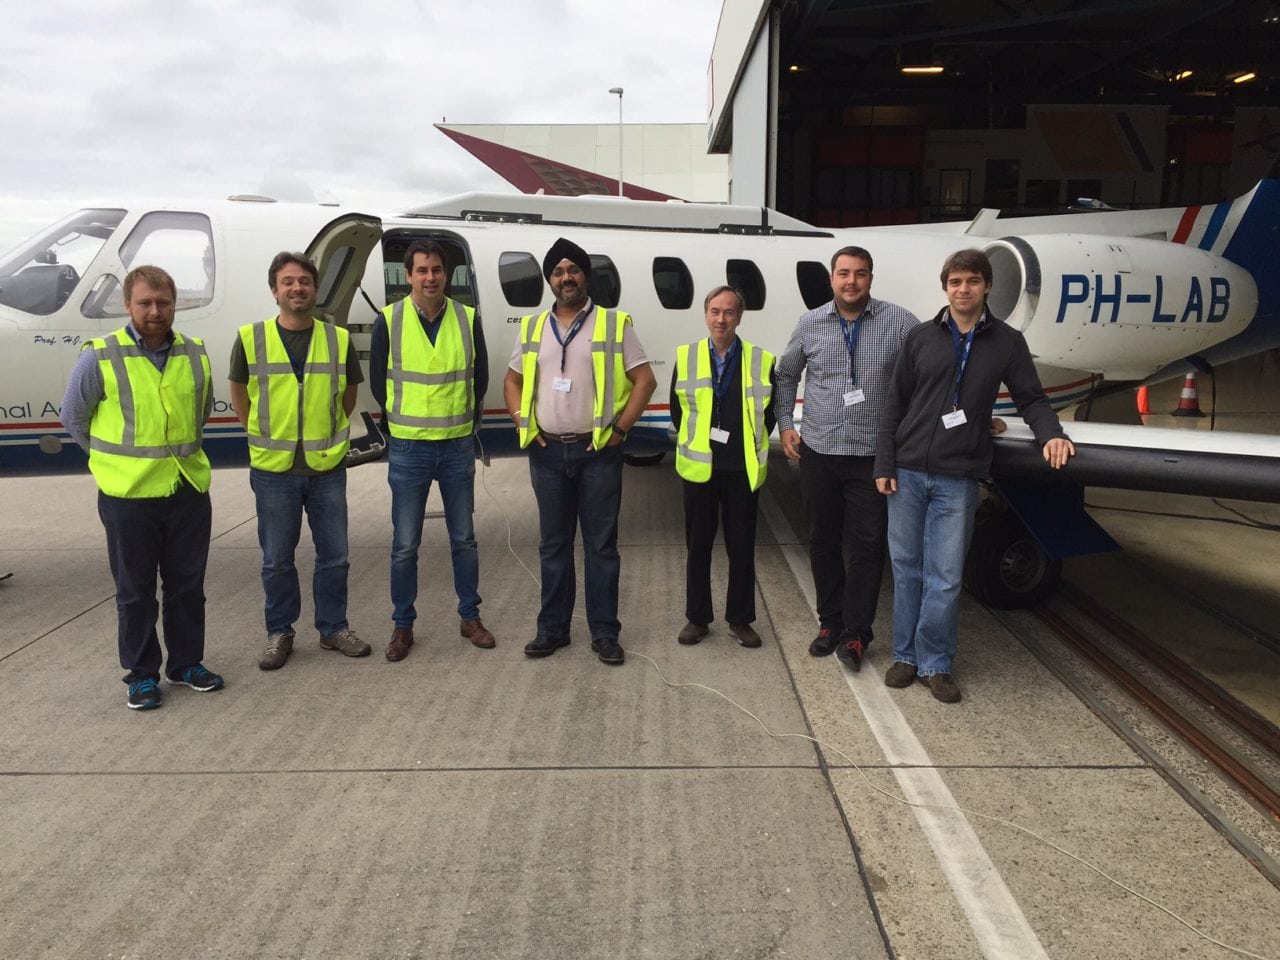 Team members from Inmarsat, the European Space Agency (ESA) and Honeywell during recent test flights for the Iris Precursor air traffic modernization project. Photo: Inmarsat